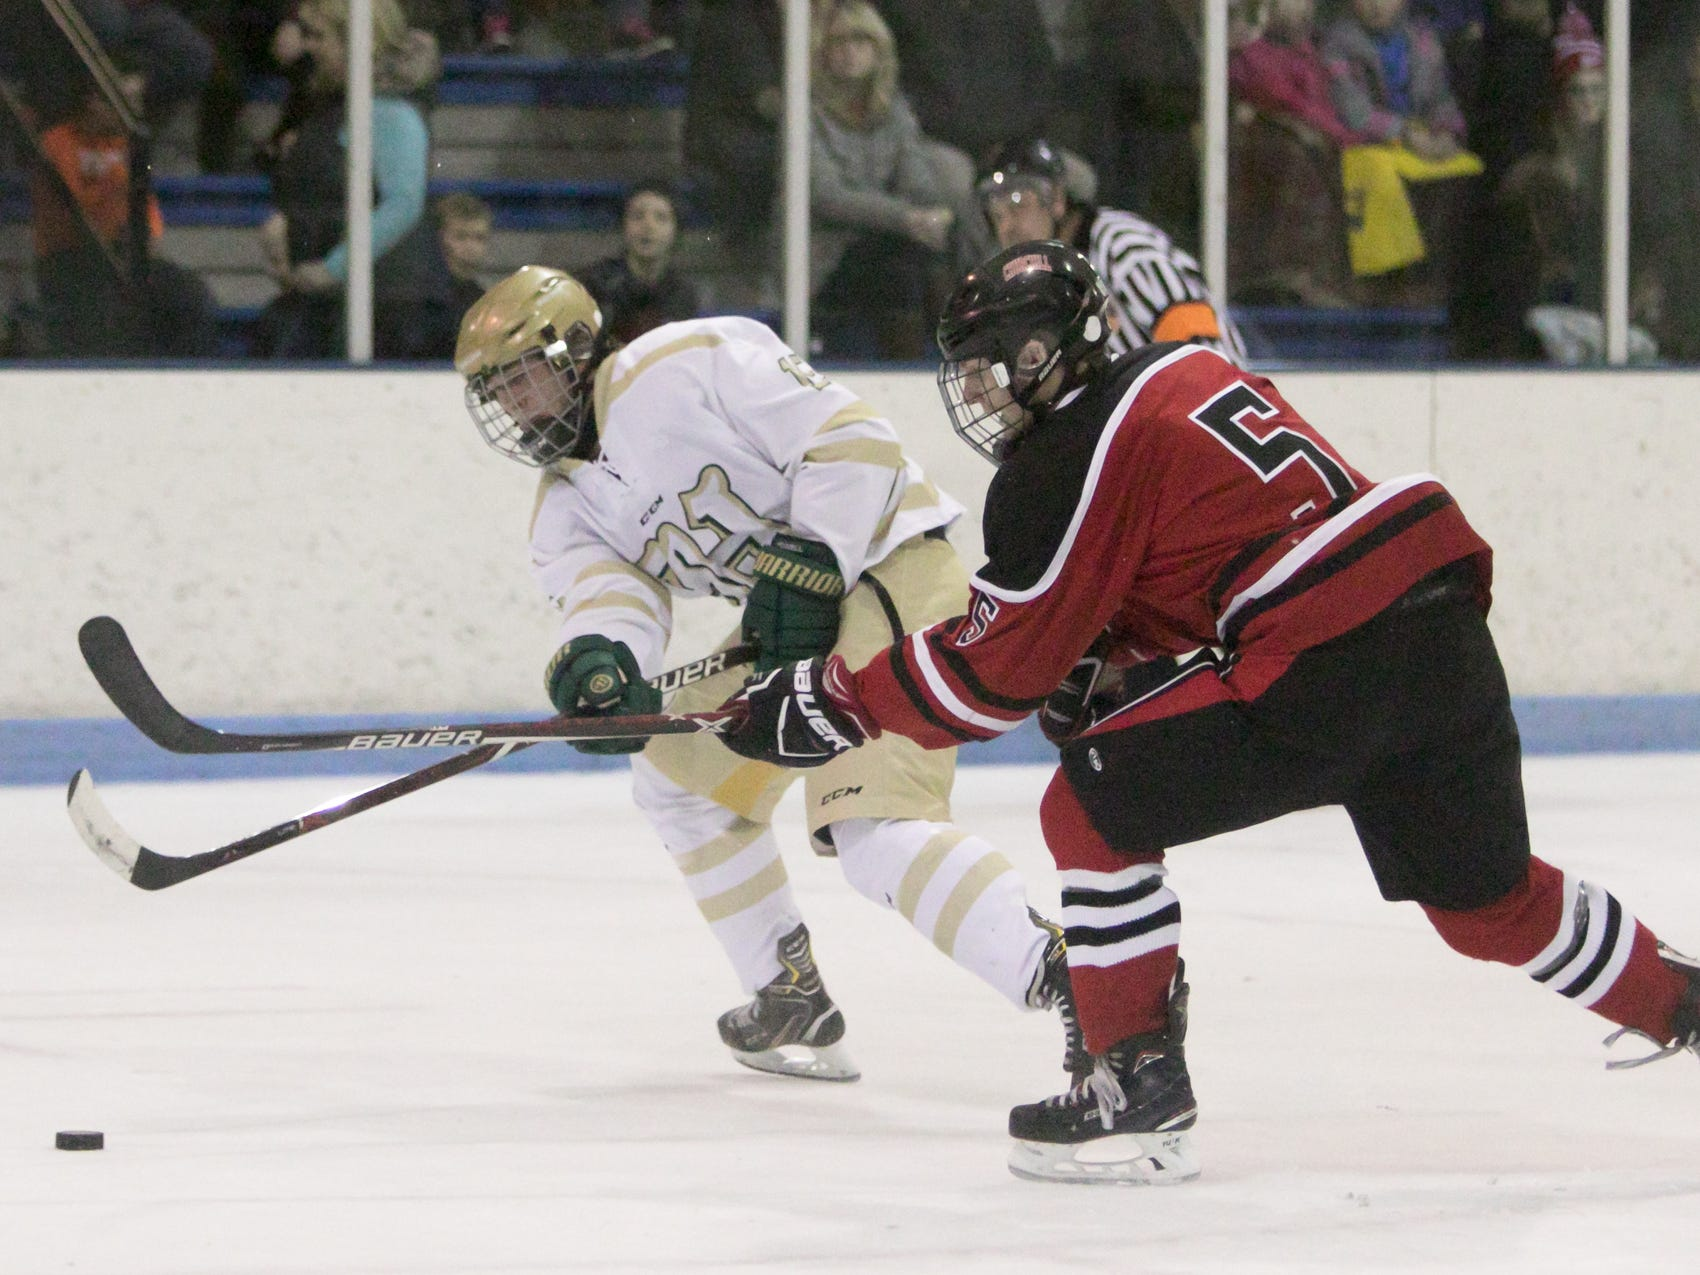 Livonia Churchill's Matt Gibboney (5) defends Howell's Jake Haggerty in the Highlanders' 6-3 victory on Friday, Jan. 4, 2019 at Grand Oaks Ice Arena.